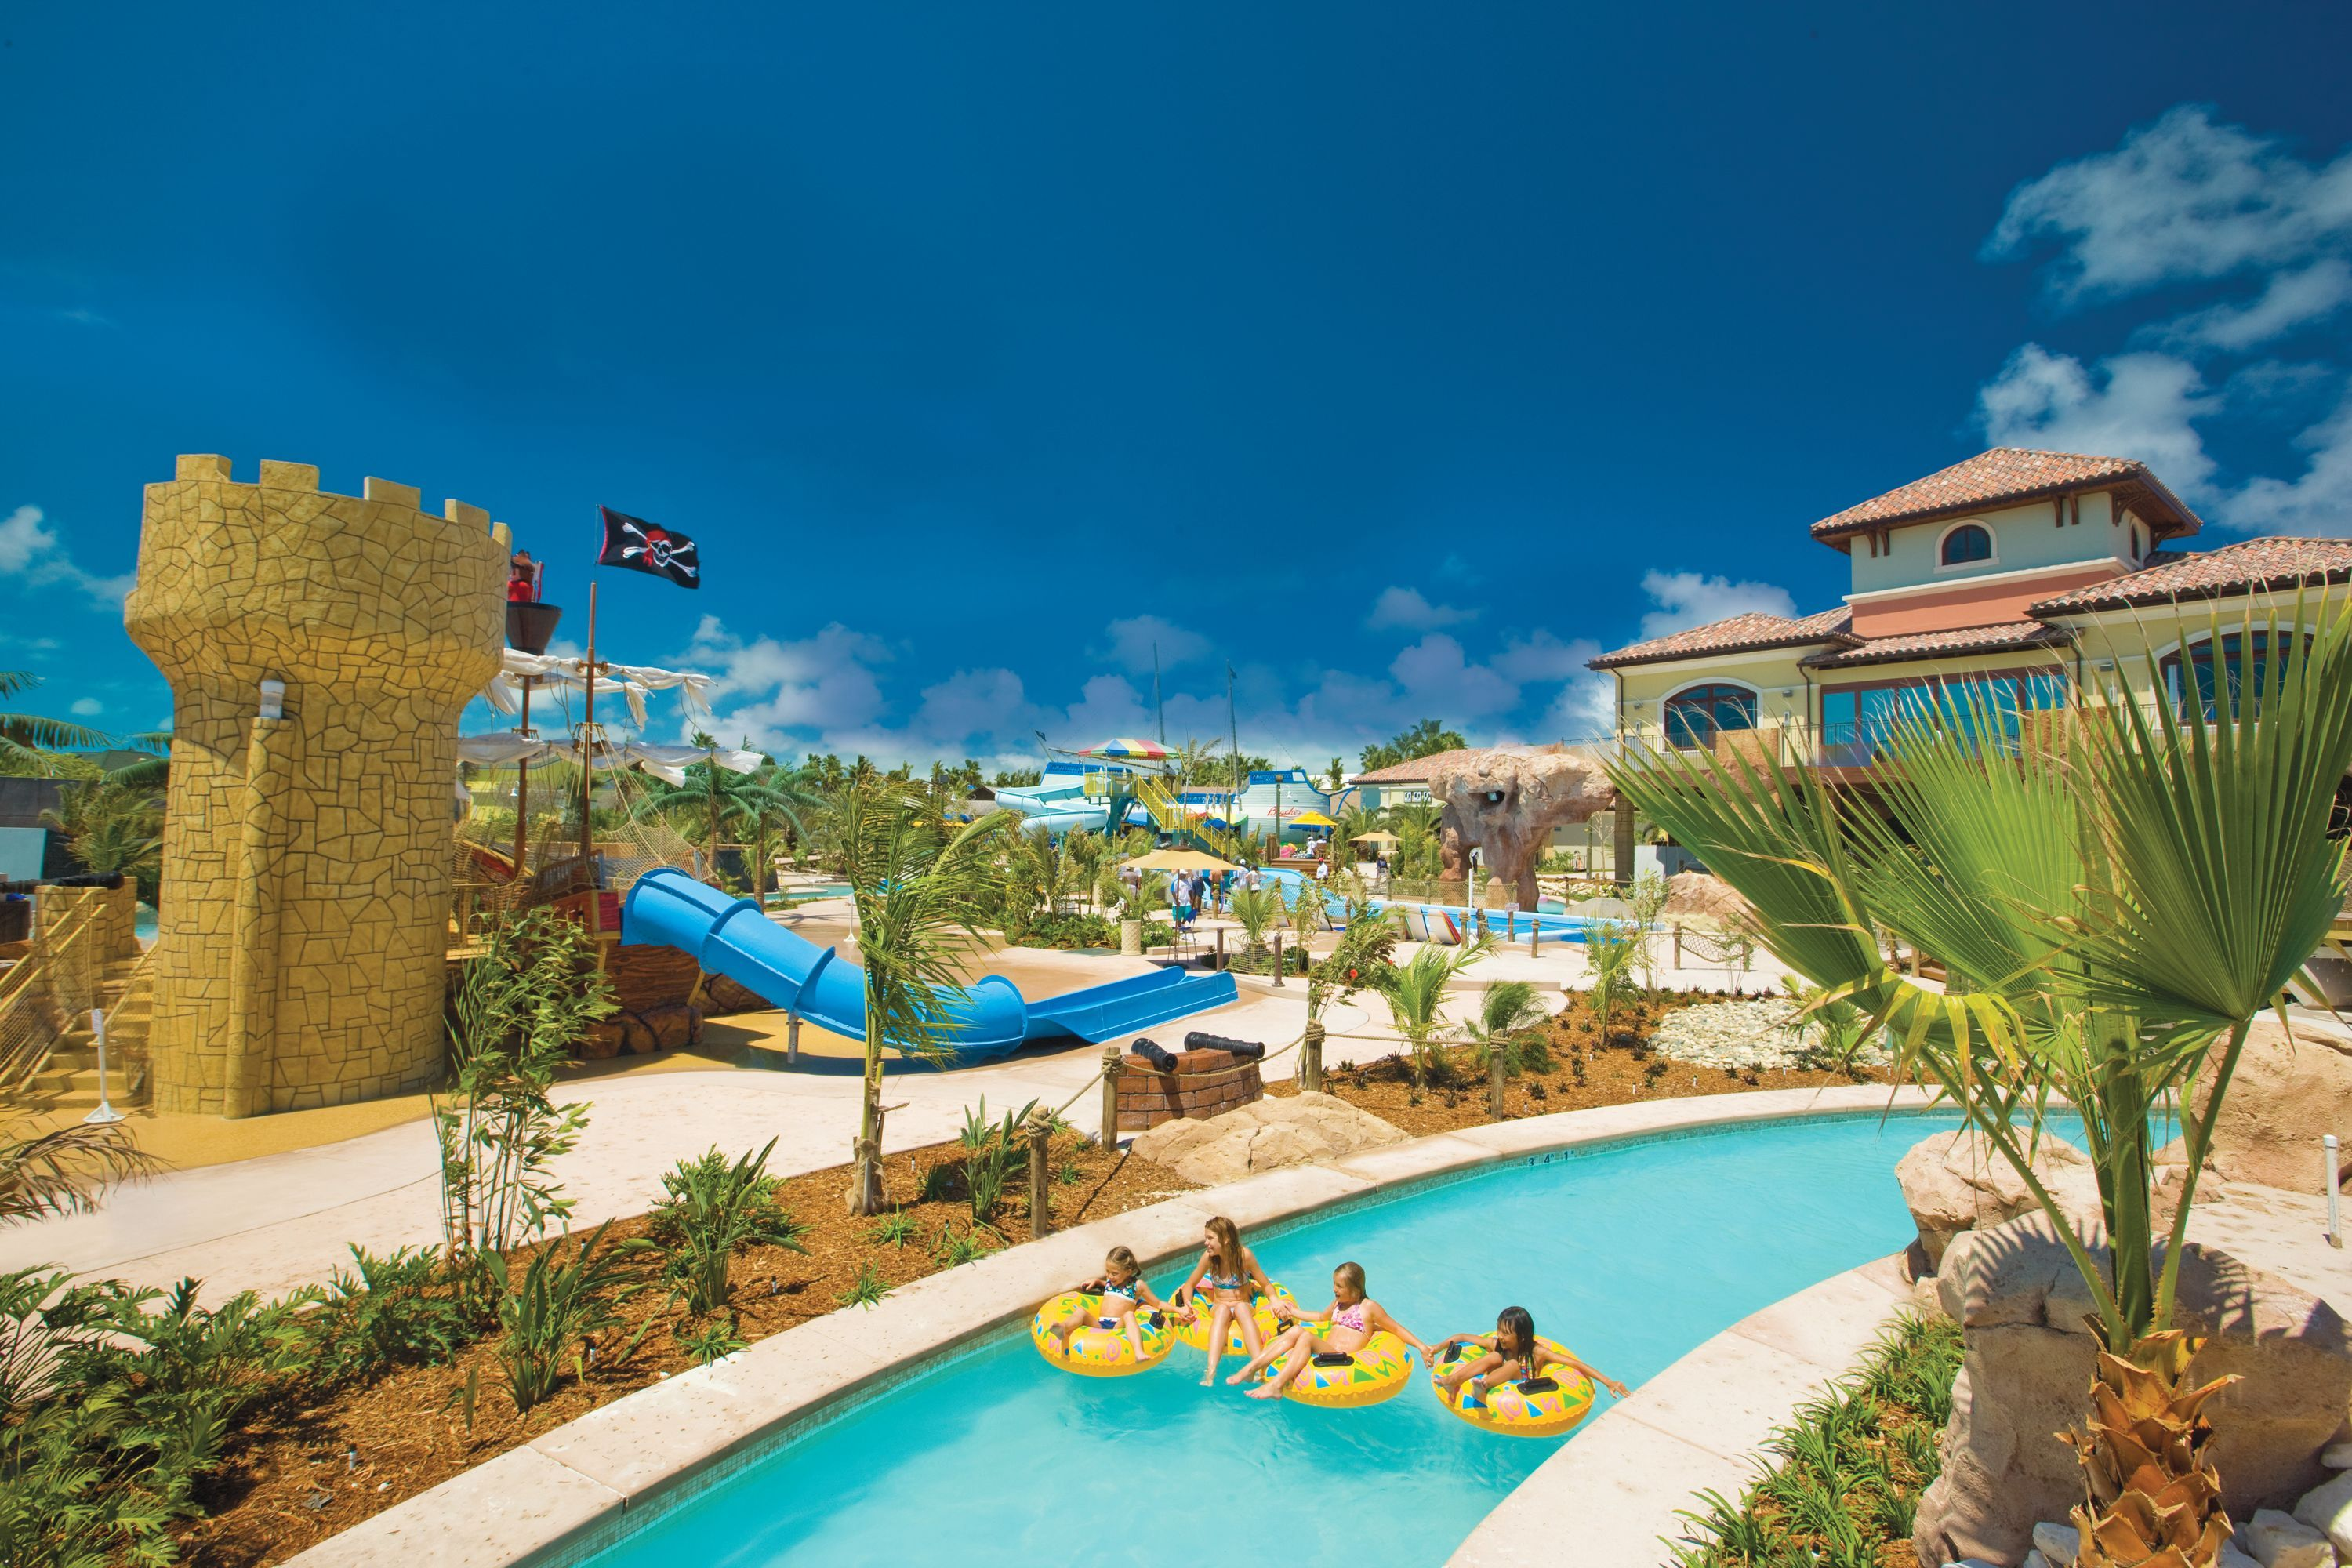 The Best KidFriendly AllInclusive Resorts in the